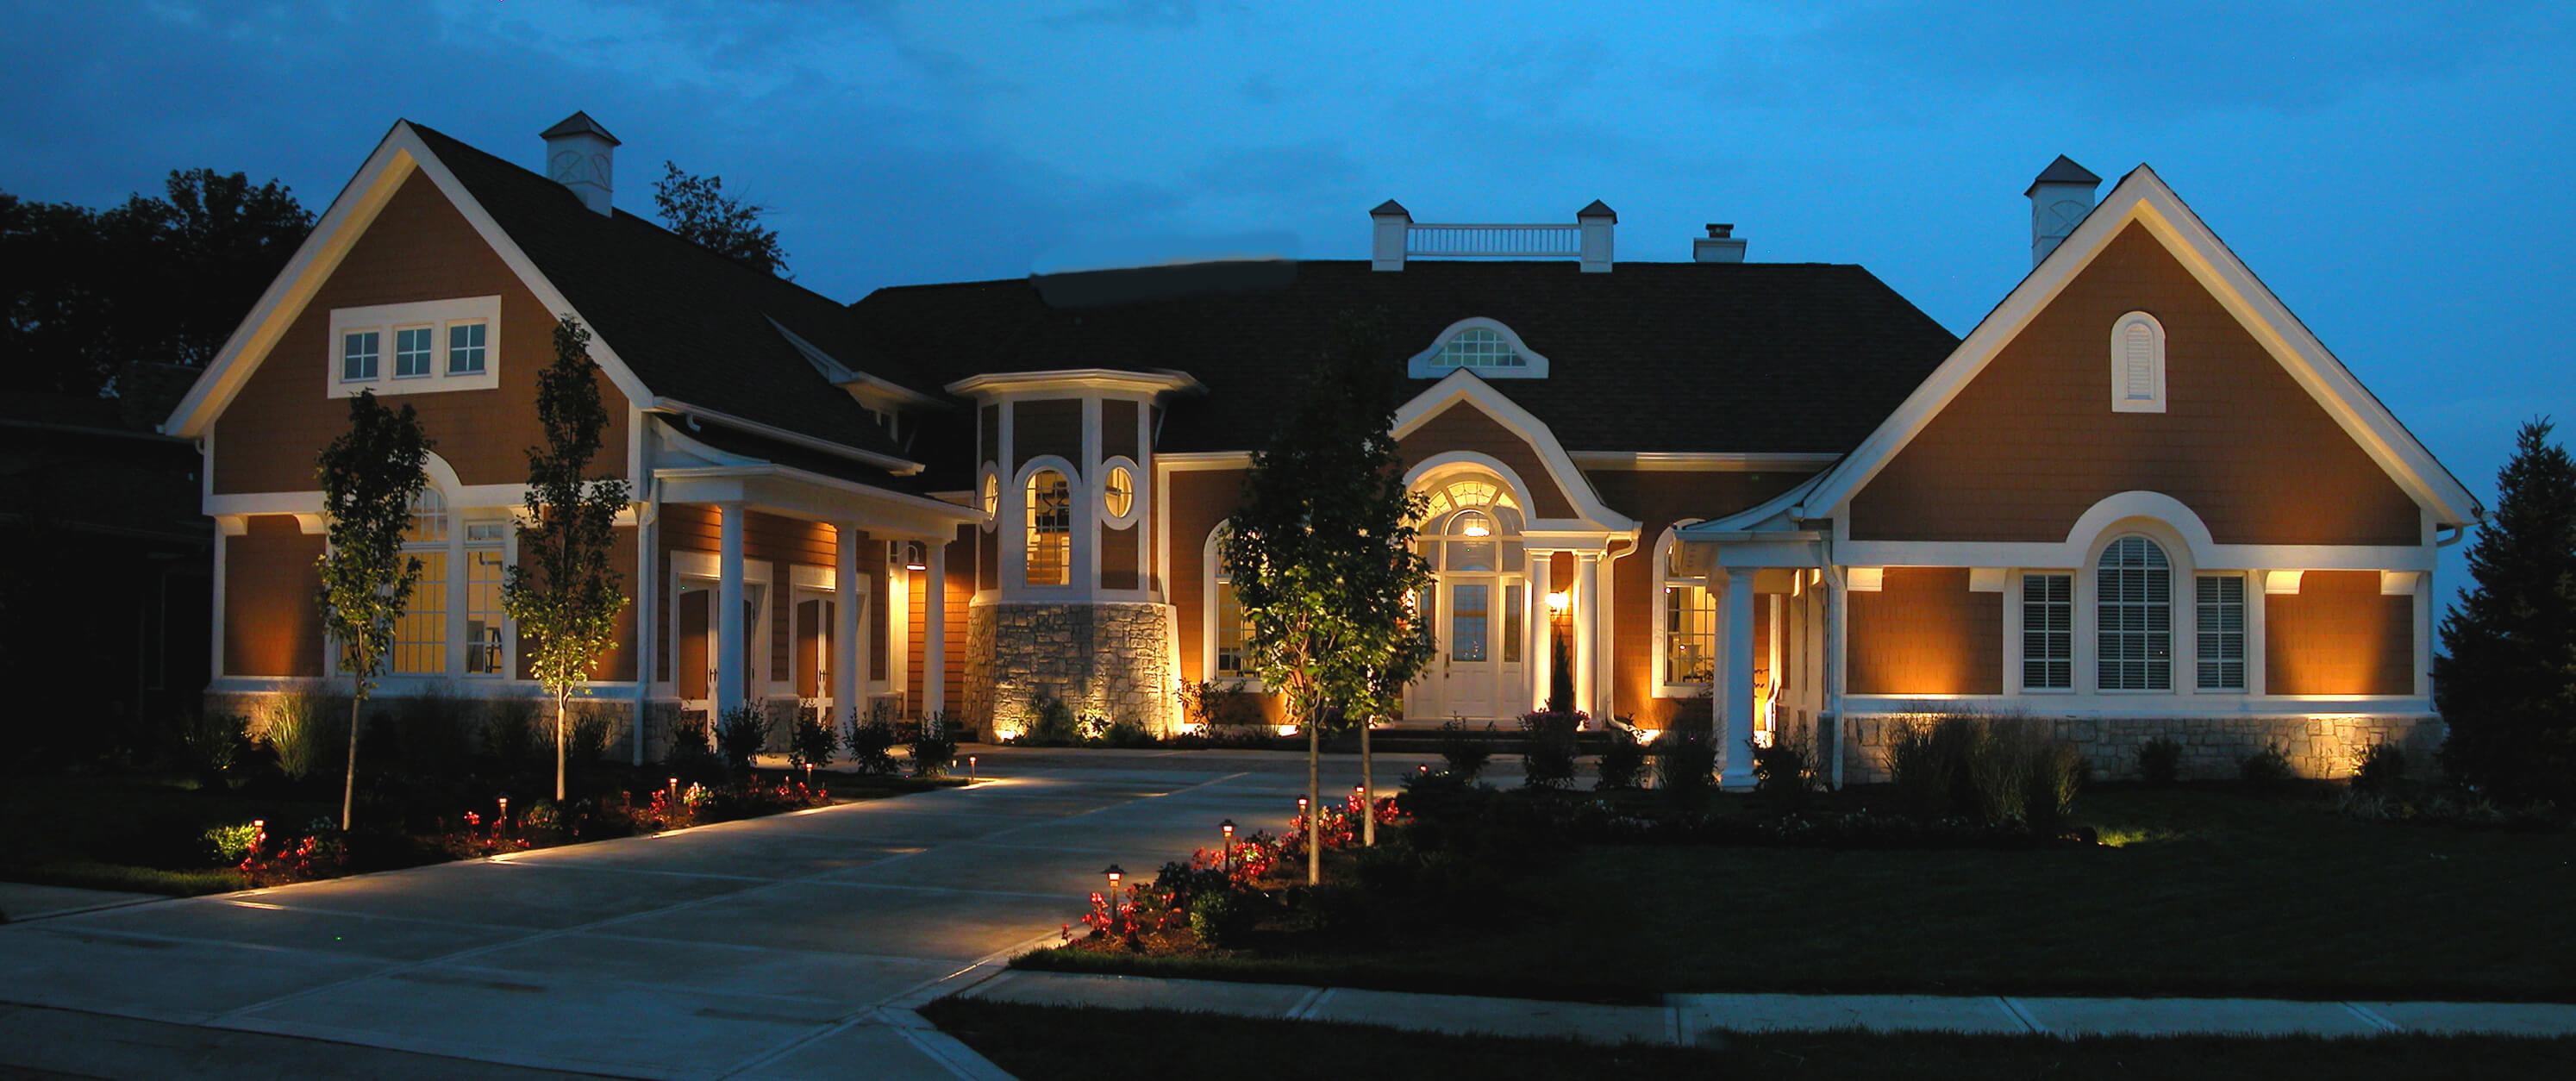 Red and white building and driveway that has specialty lighting